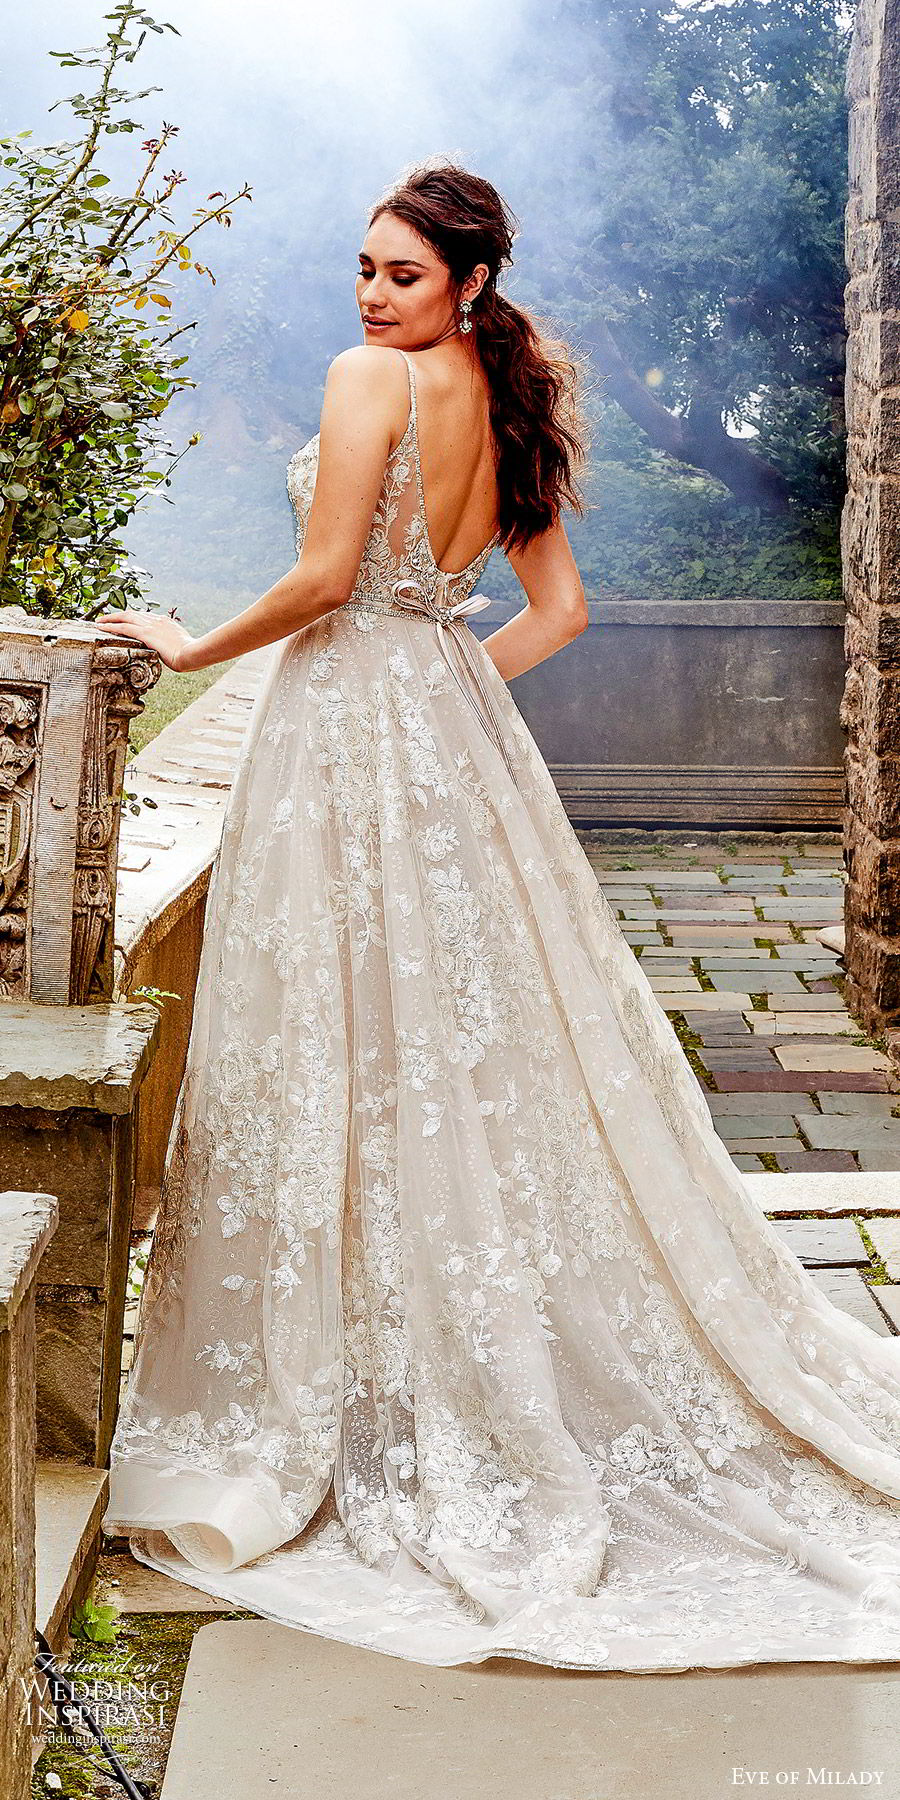 eve of milady fall 2018 bridal sleeveless thin beaded straps fully embellished a line ball gown wedding dress romantic glitzy chapel train (6) bv